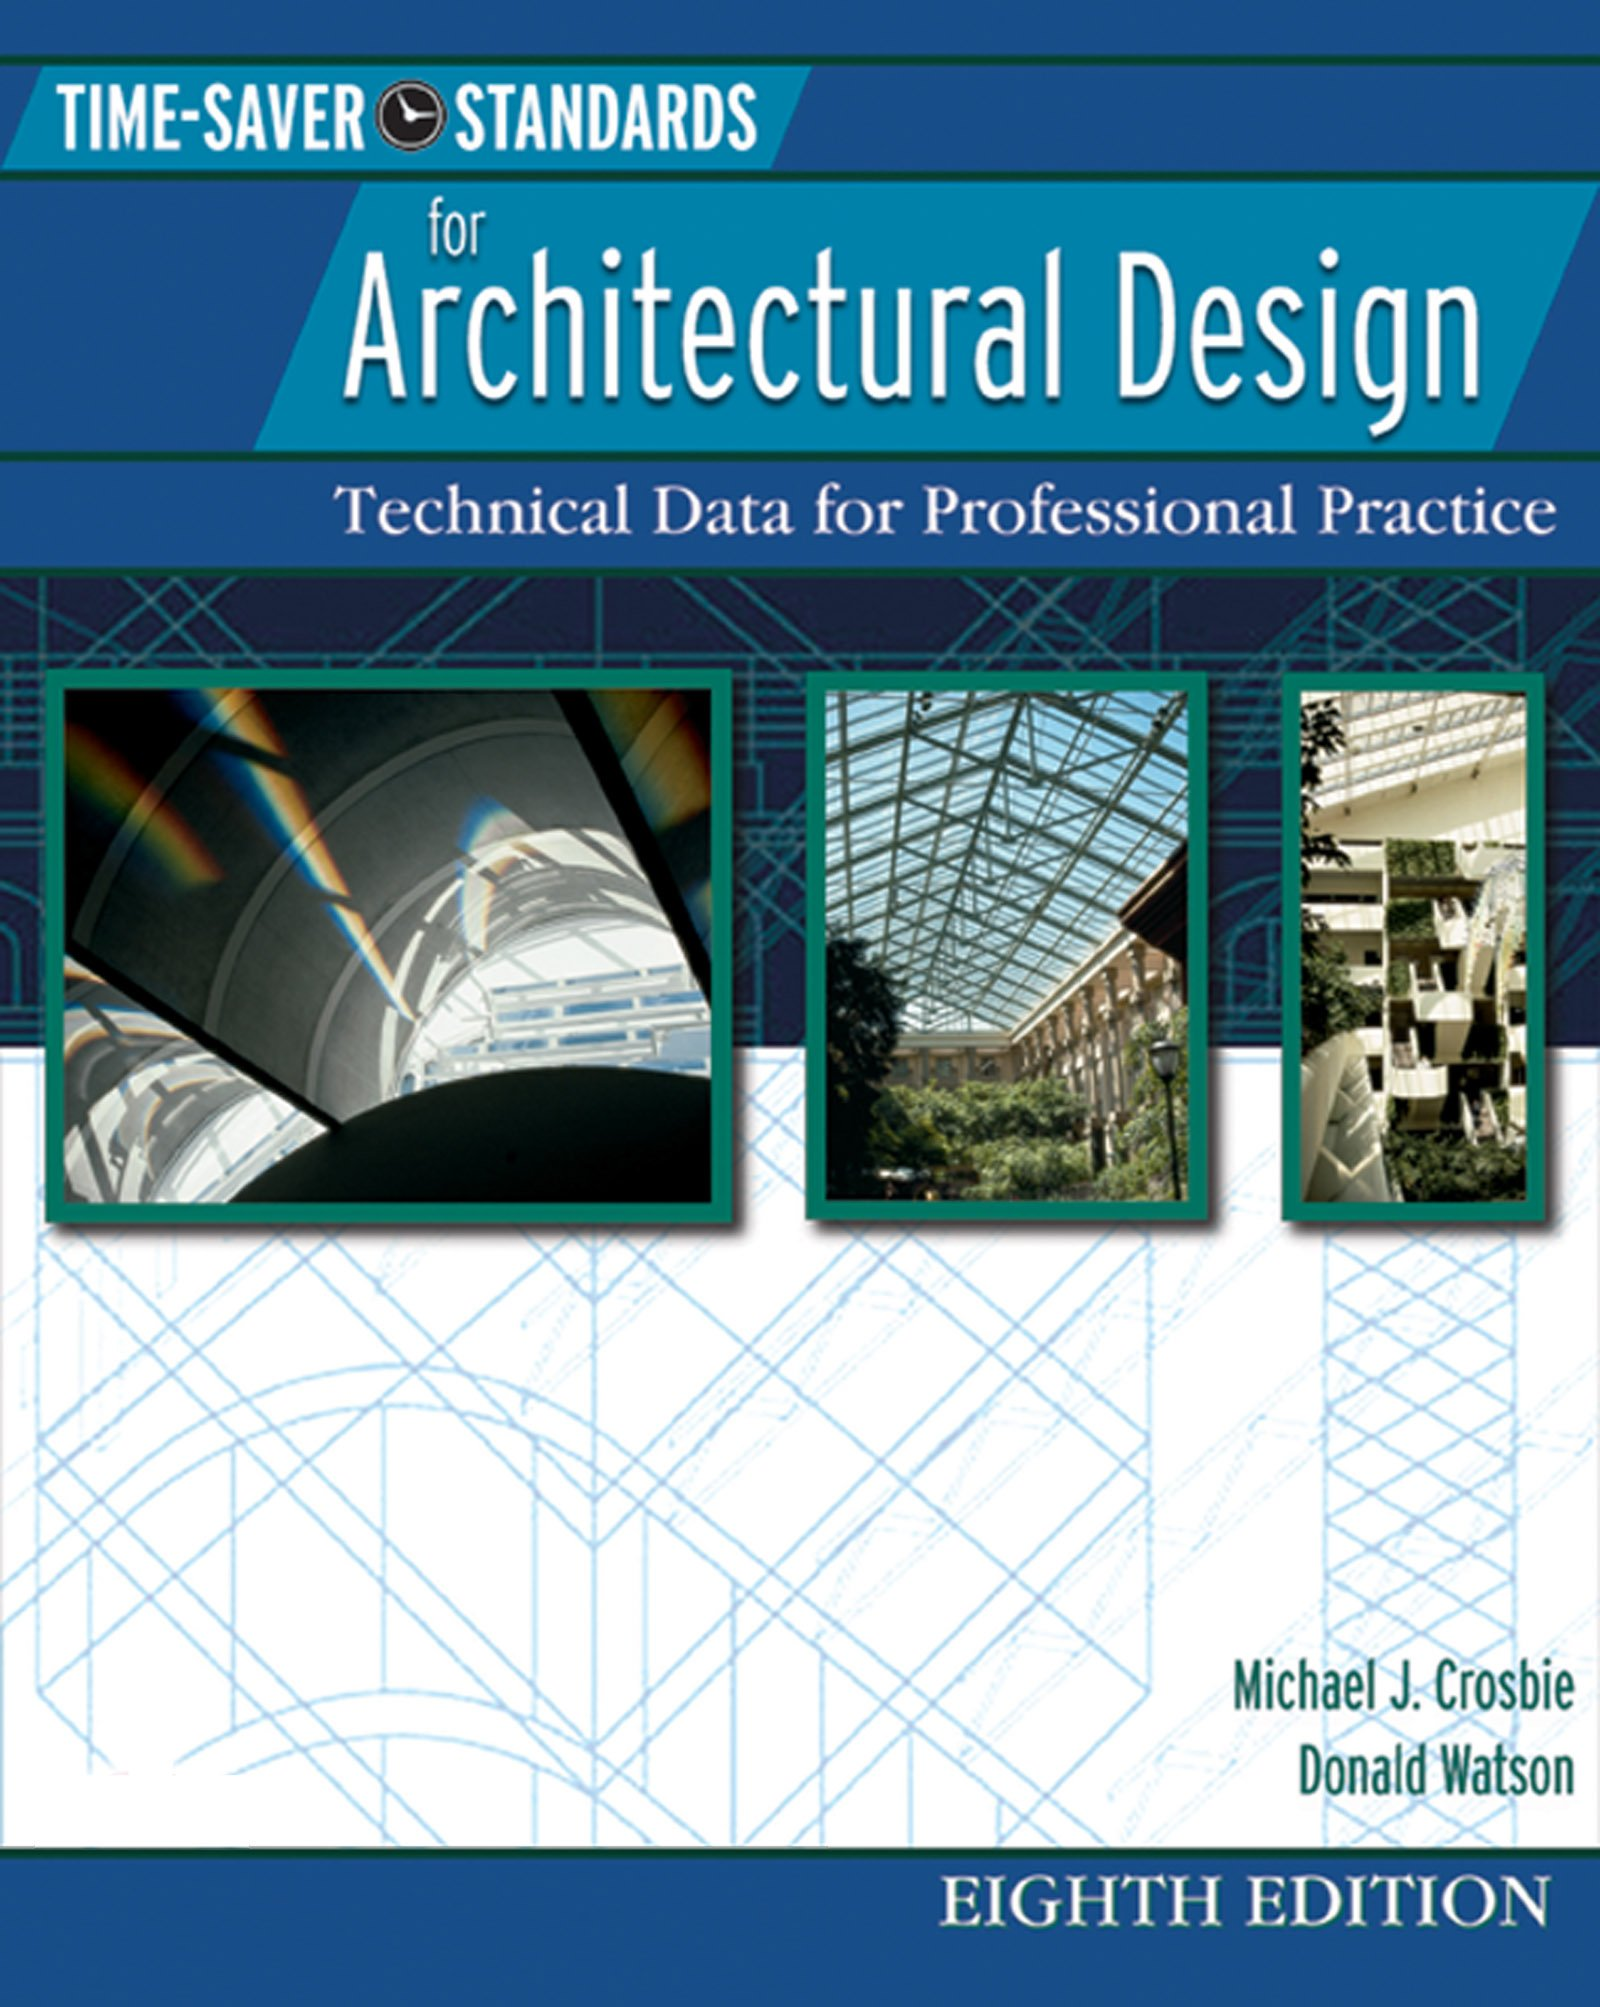 Amazon Com Time Saver Standards For Architectural Design 8 E Ebook Technical Data For Professional Practice Time Saver Standards For Architectural Design Ebook Crosbie Michael J Watson Donald Kindle Store